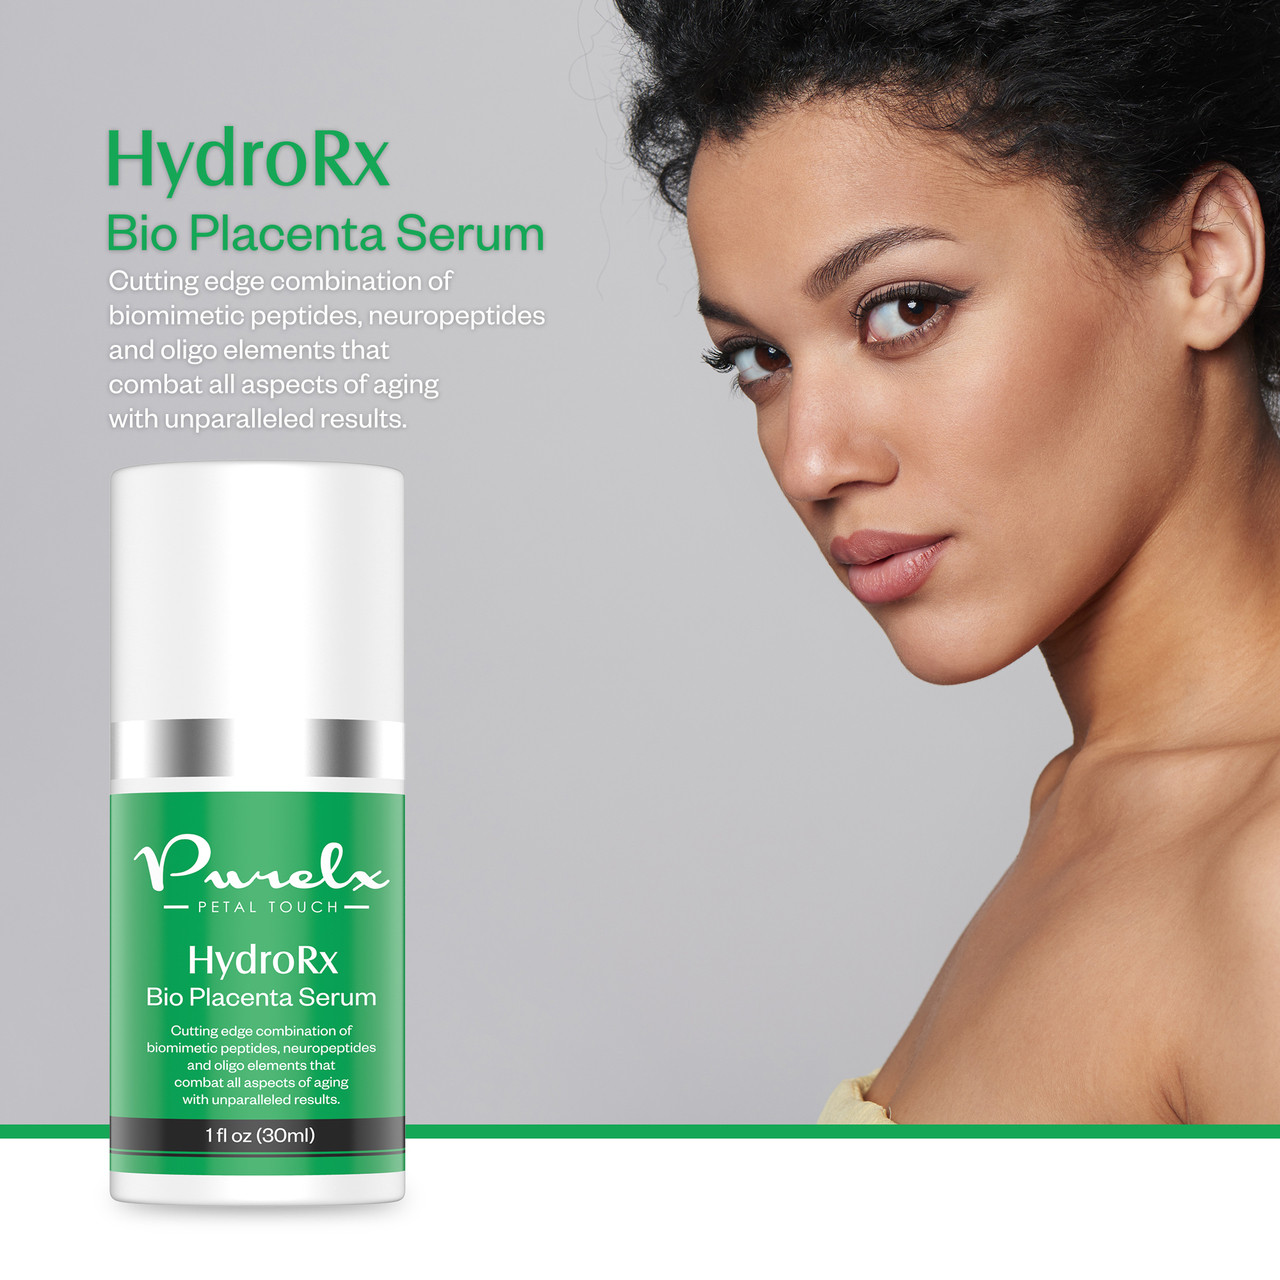 Using latest advancements in biochemistry, HydroRx Bio Placenta Serum firms, fortifies and increases skin's cell density.